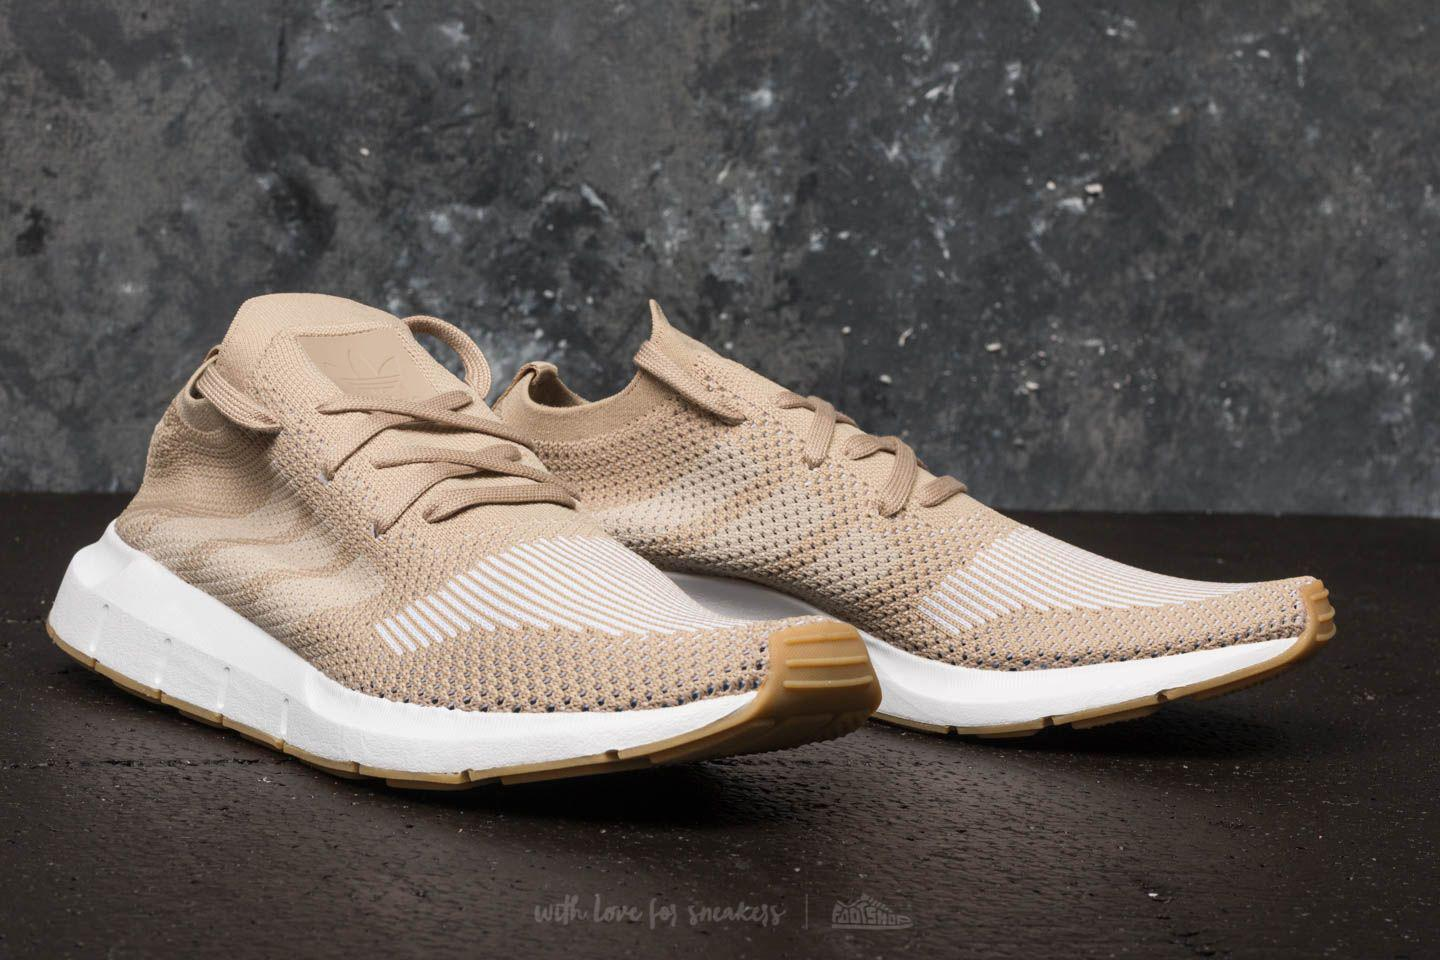 455ebd86984 Lyst - adidas Originals Adidas Swift Run Primeknit Raw Gold  Off ...